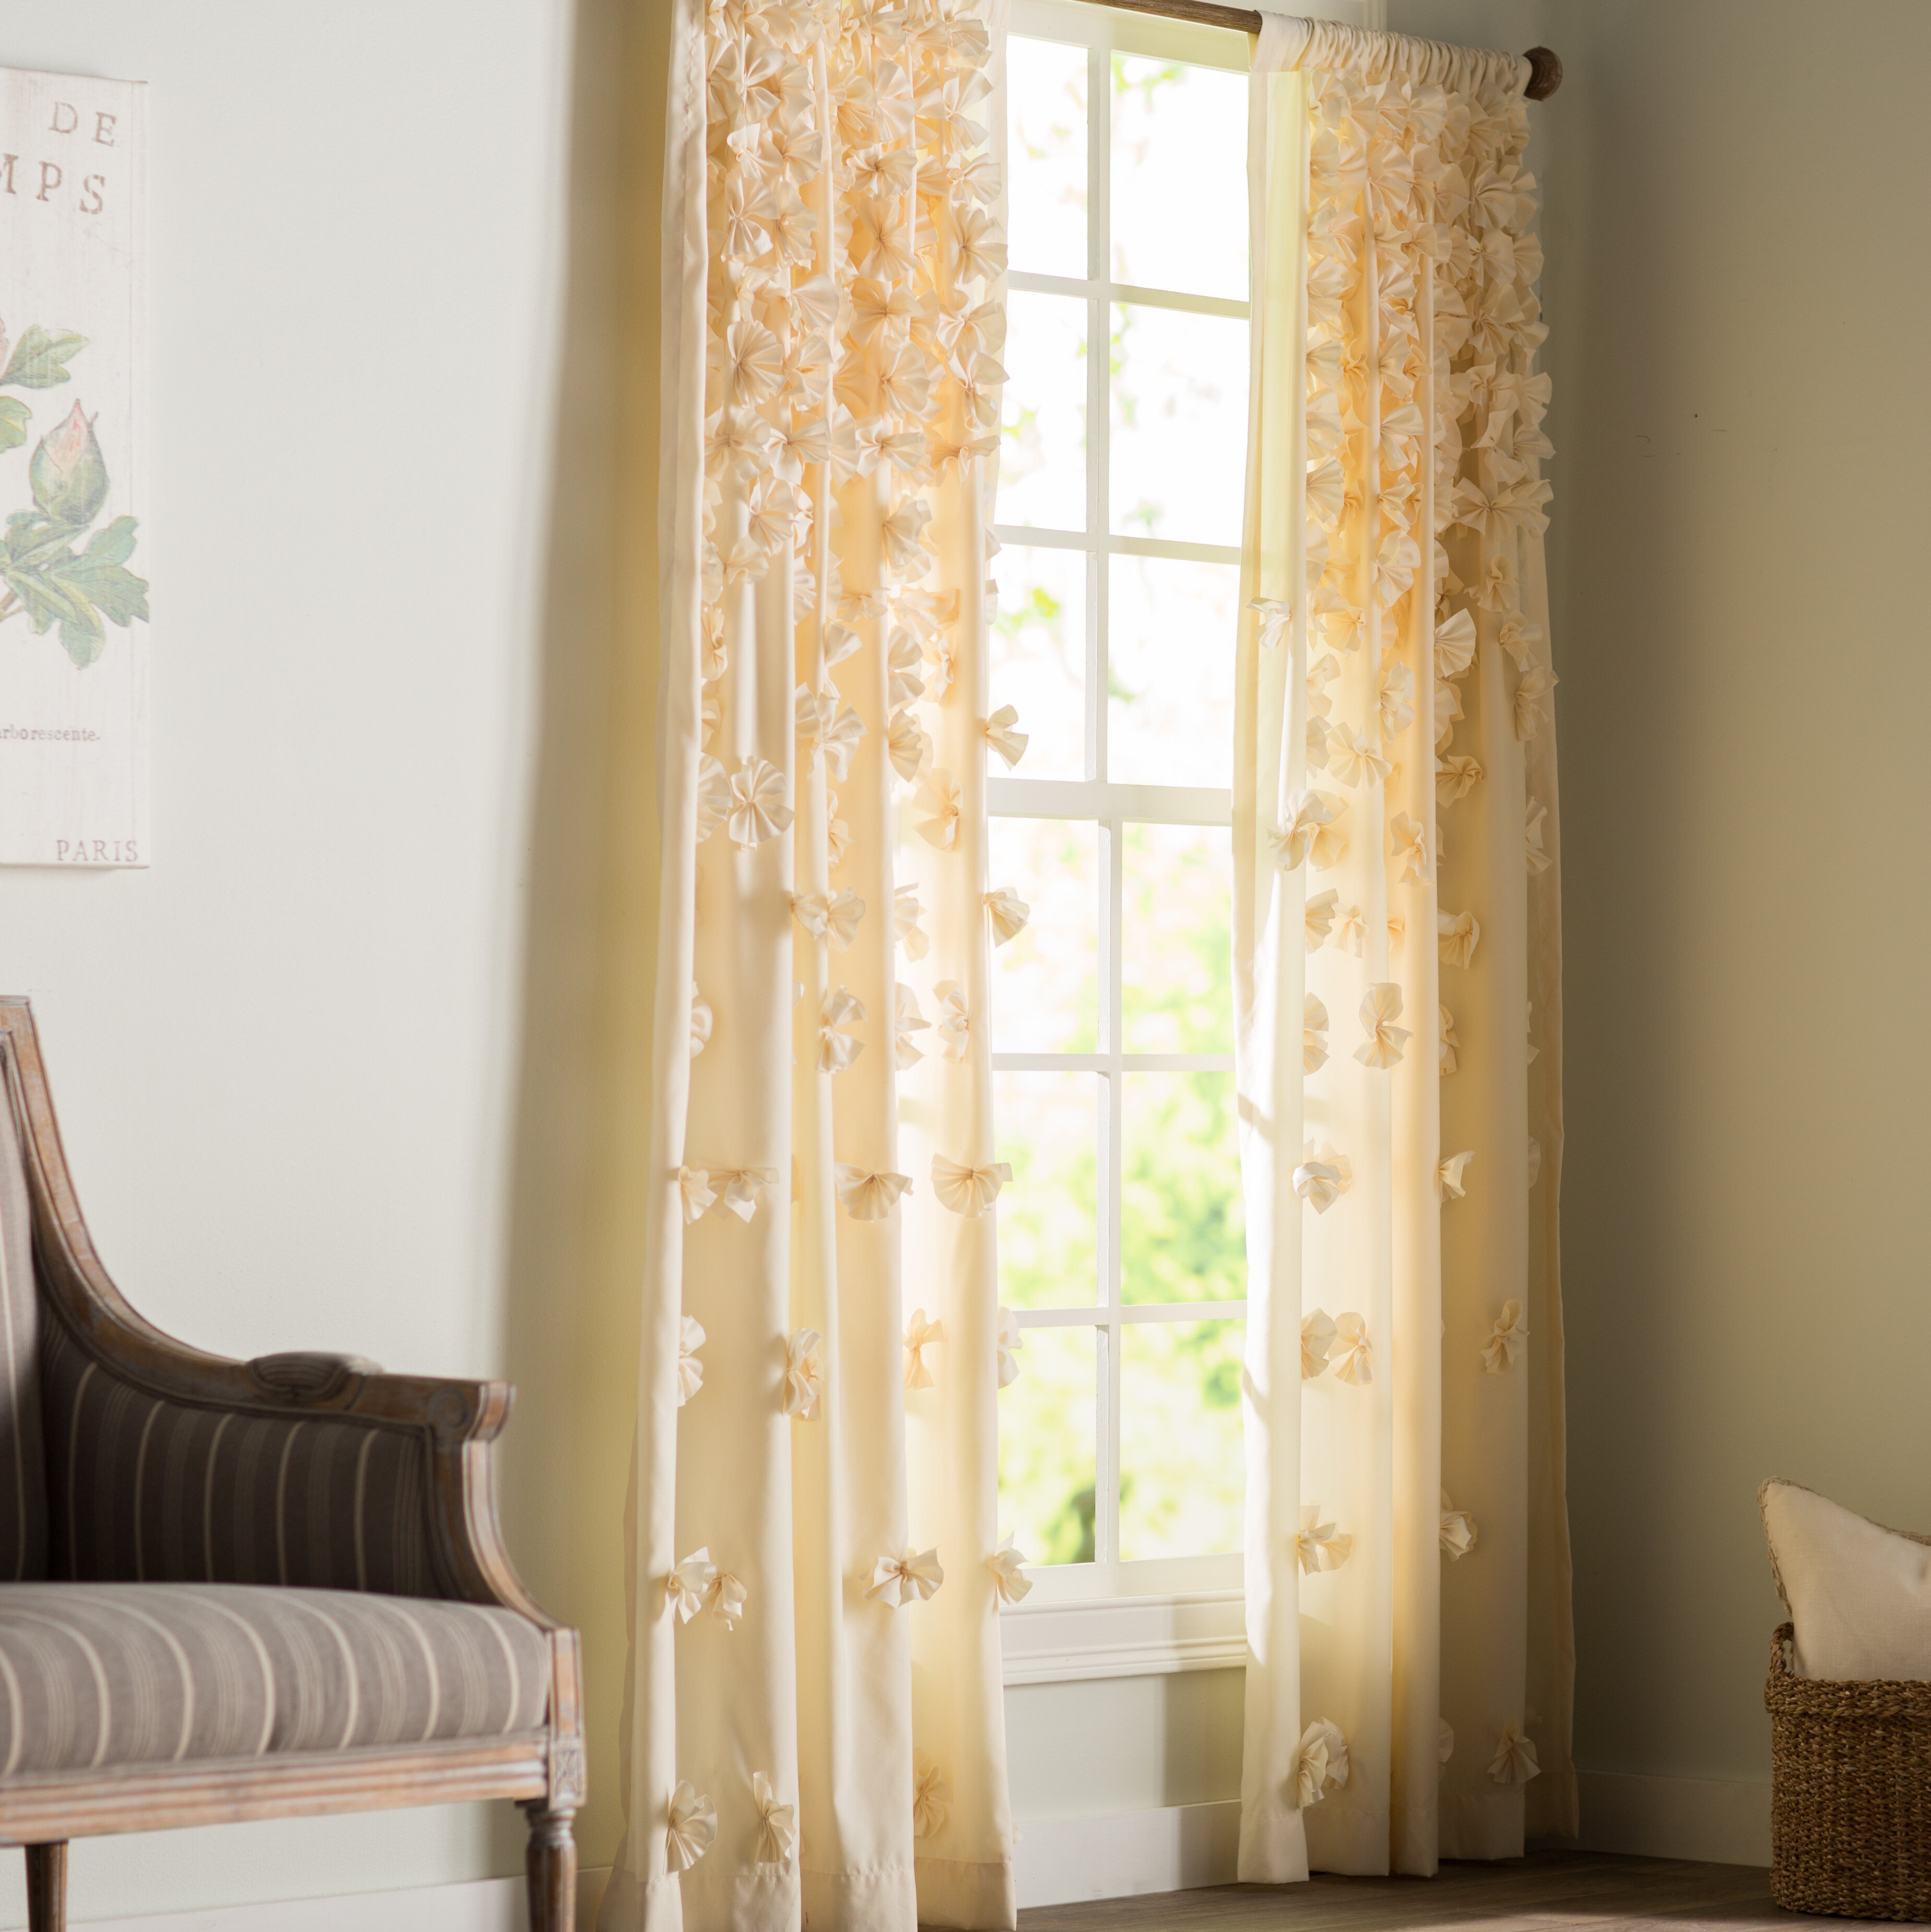 drapery tone shades embroidery and blackout on helen toronto drapes s roman portfolios curtains in portfolio soft